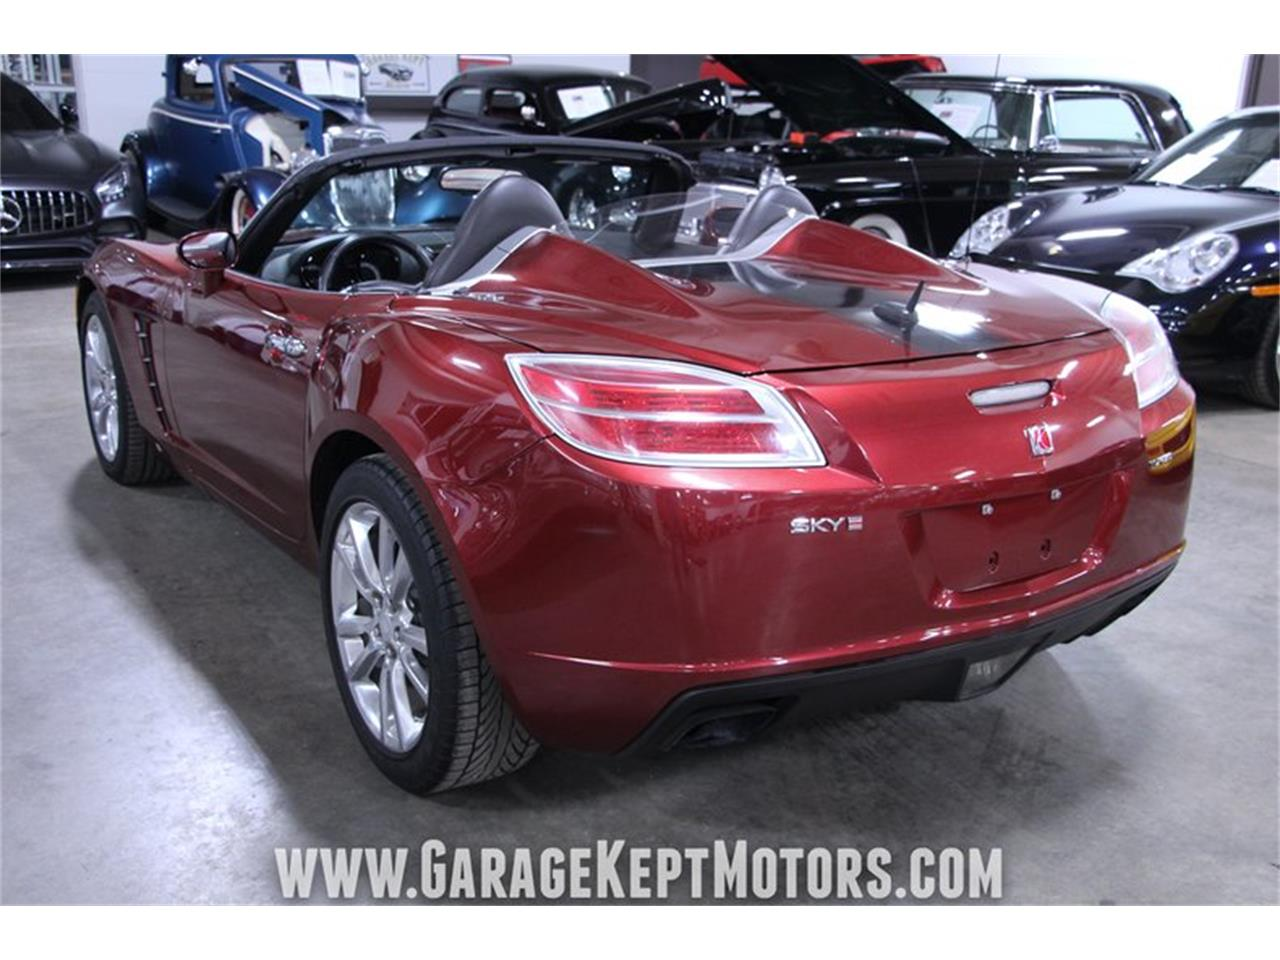 2009 Saturn Sky for sale in Grand Rapids, MI – photo 21